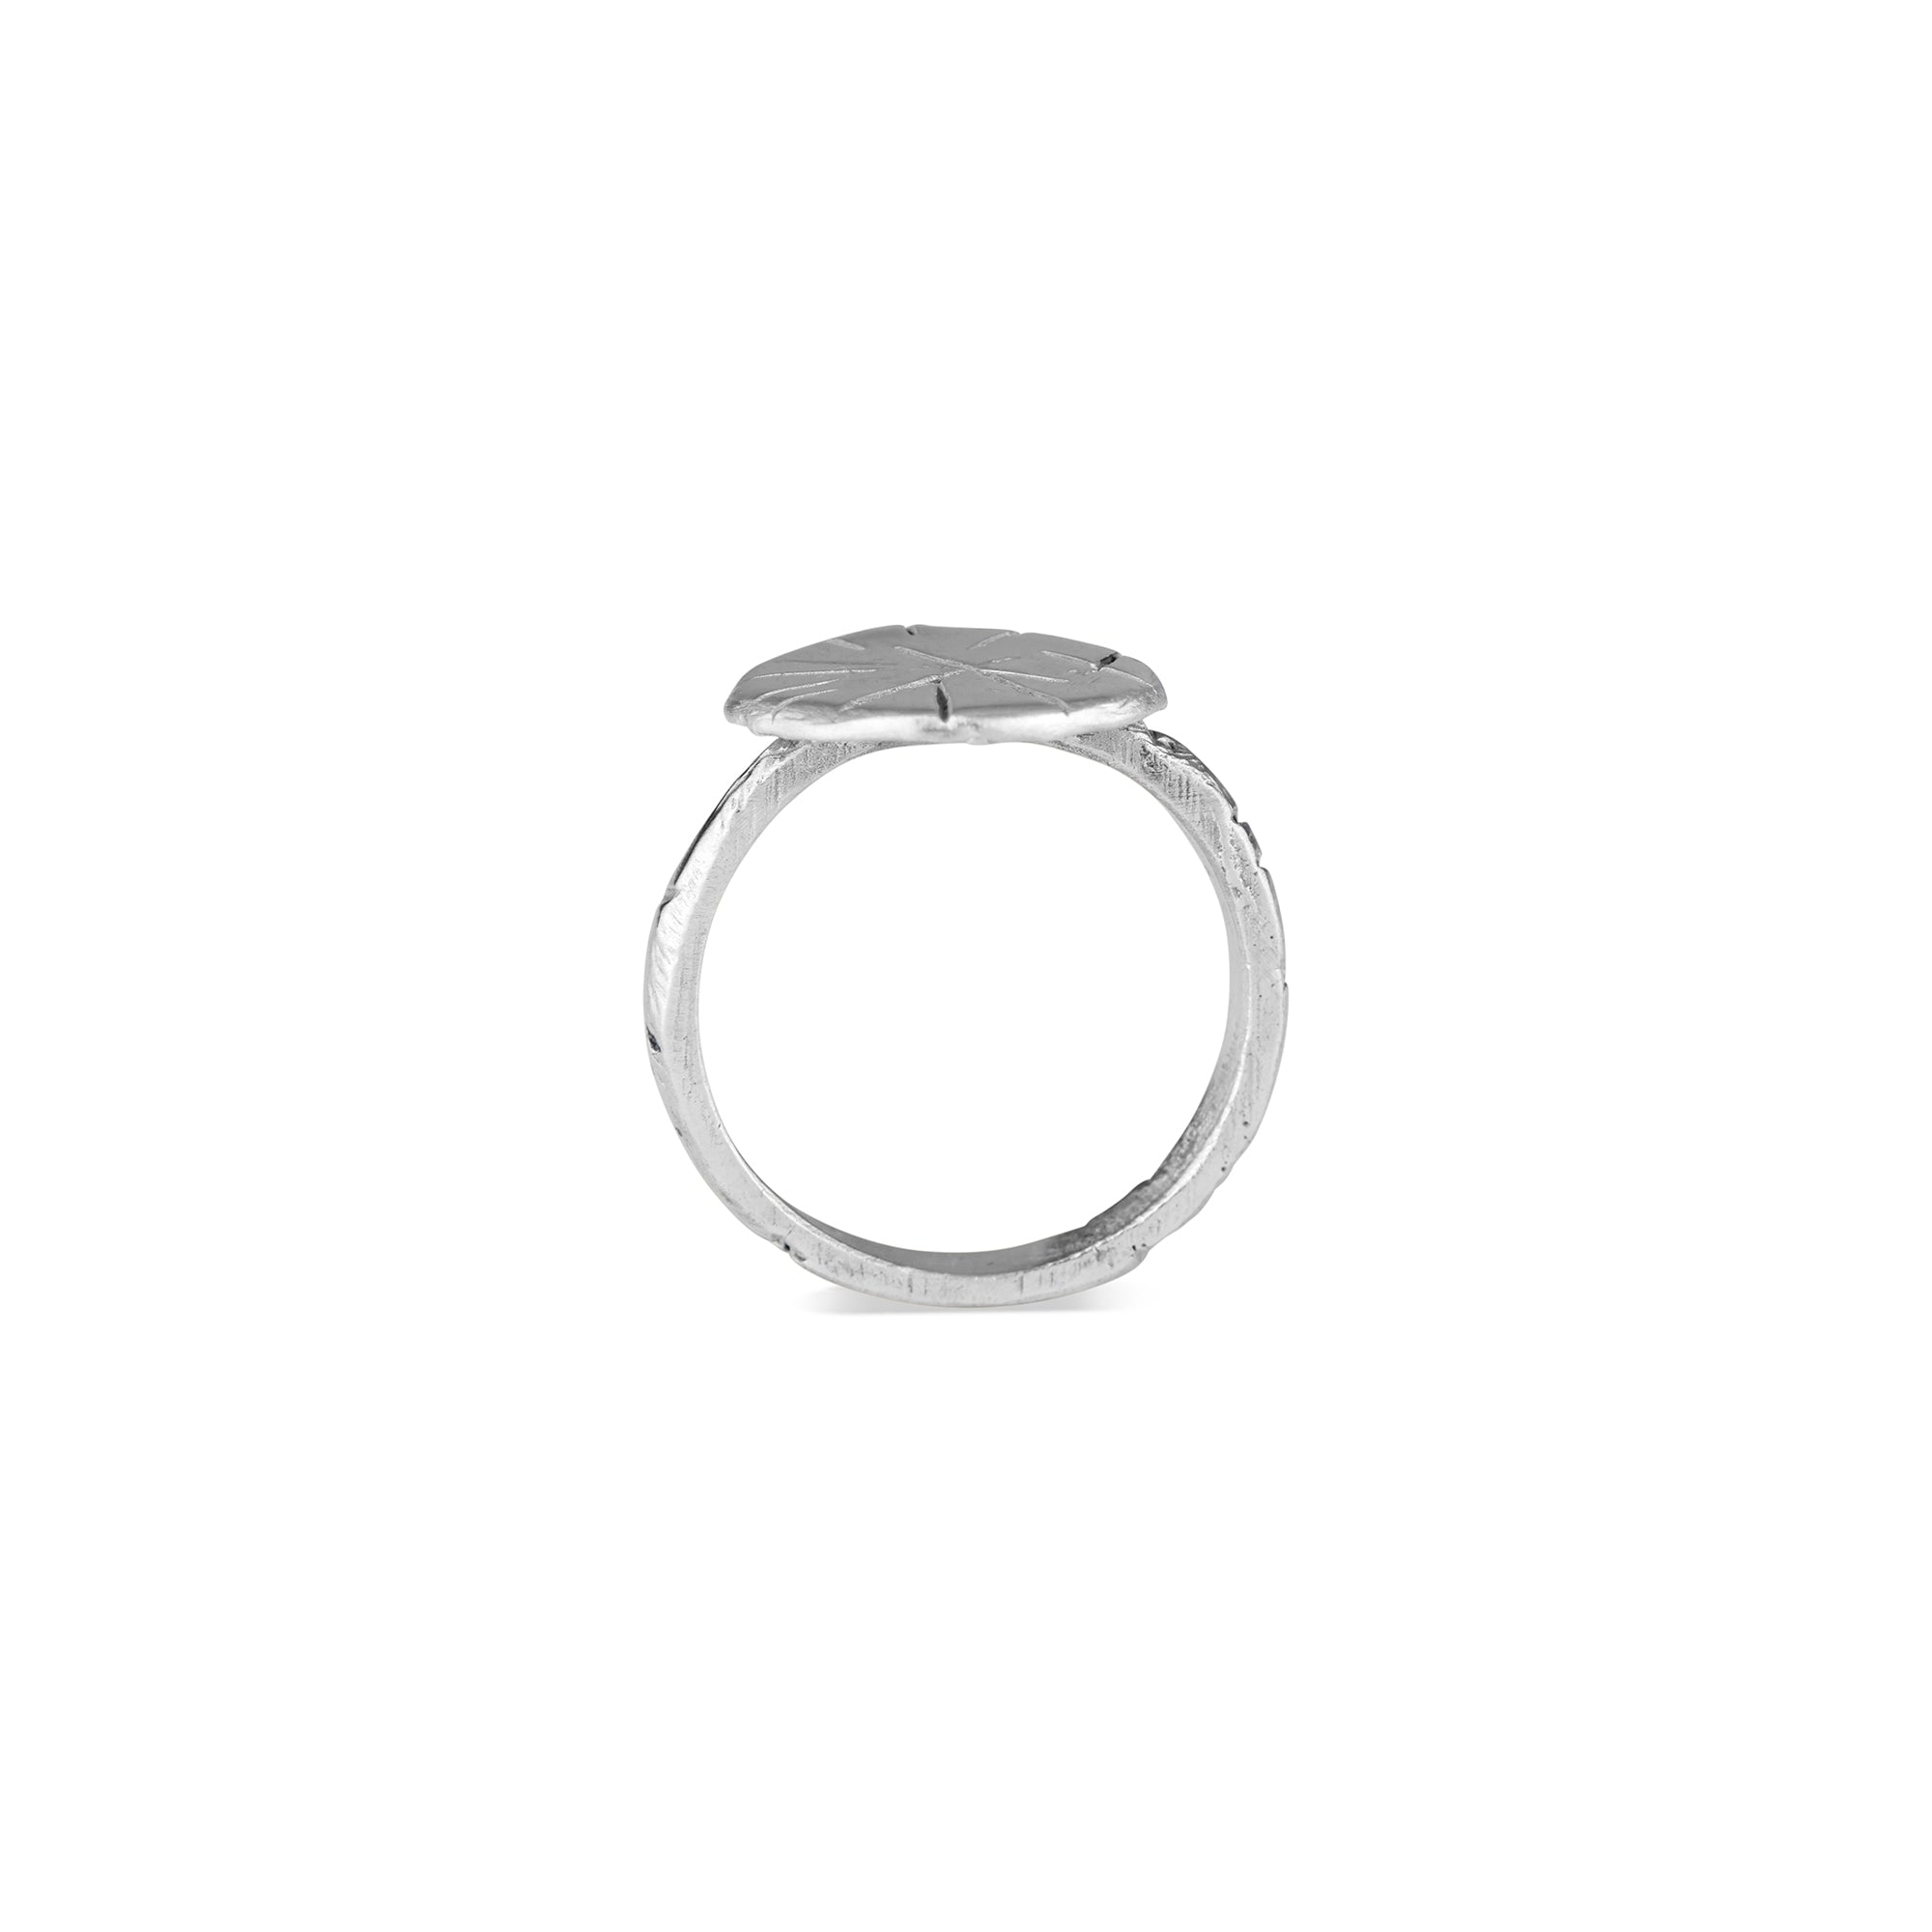 The Natalie McMillan Gina Ring is a must have for anyone who likes a solid, comfortable ring that can be worn daily! Its thin band is hand carved with Natalie McMillan Jewelry's signature markings and features a thin circle that lays flat against the finger.